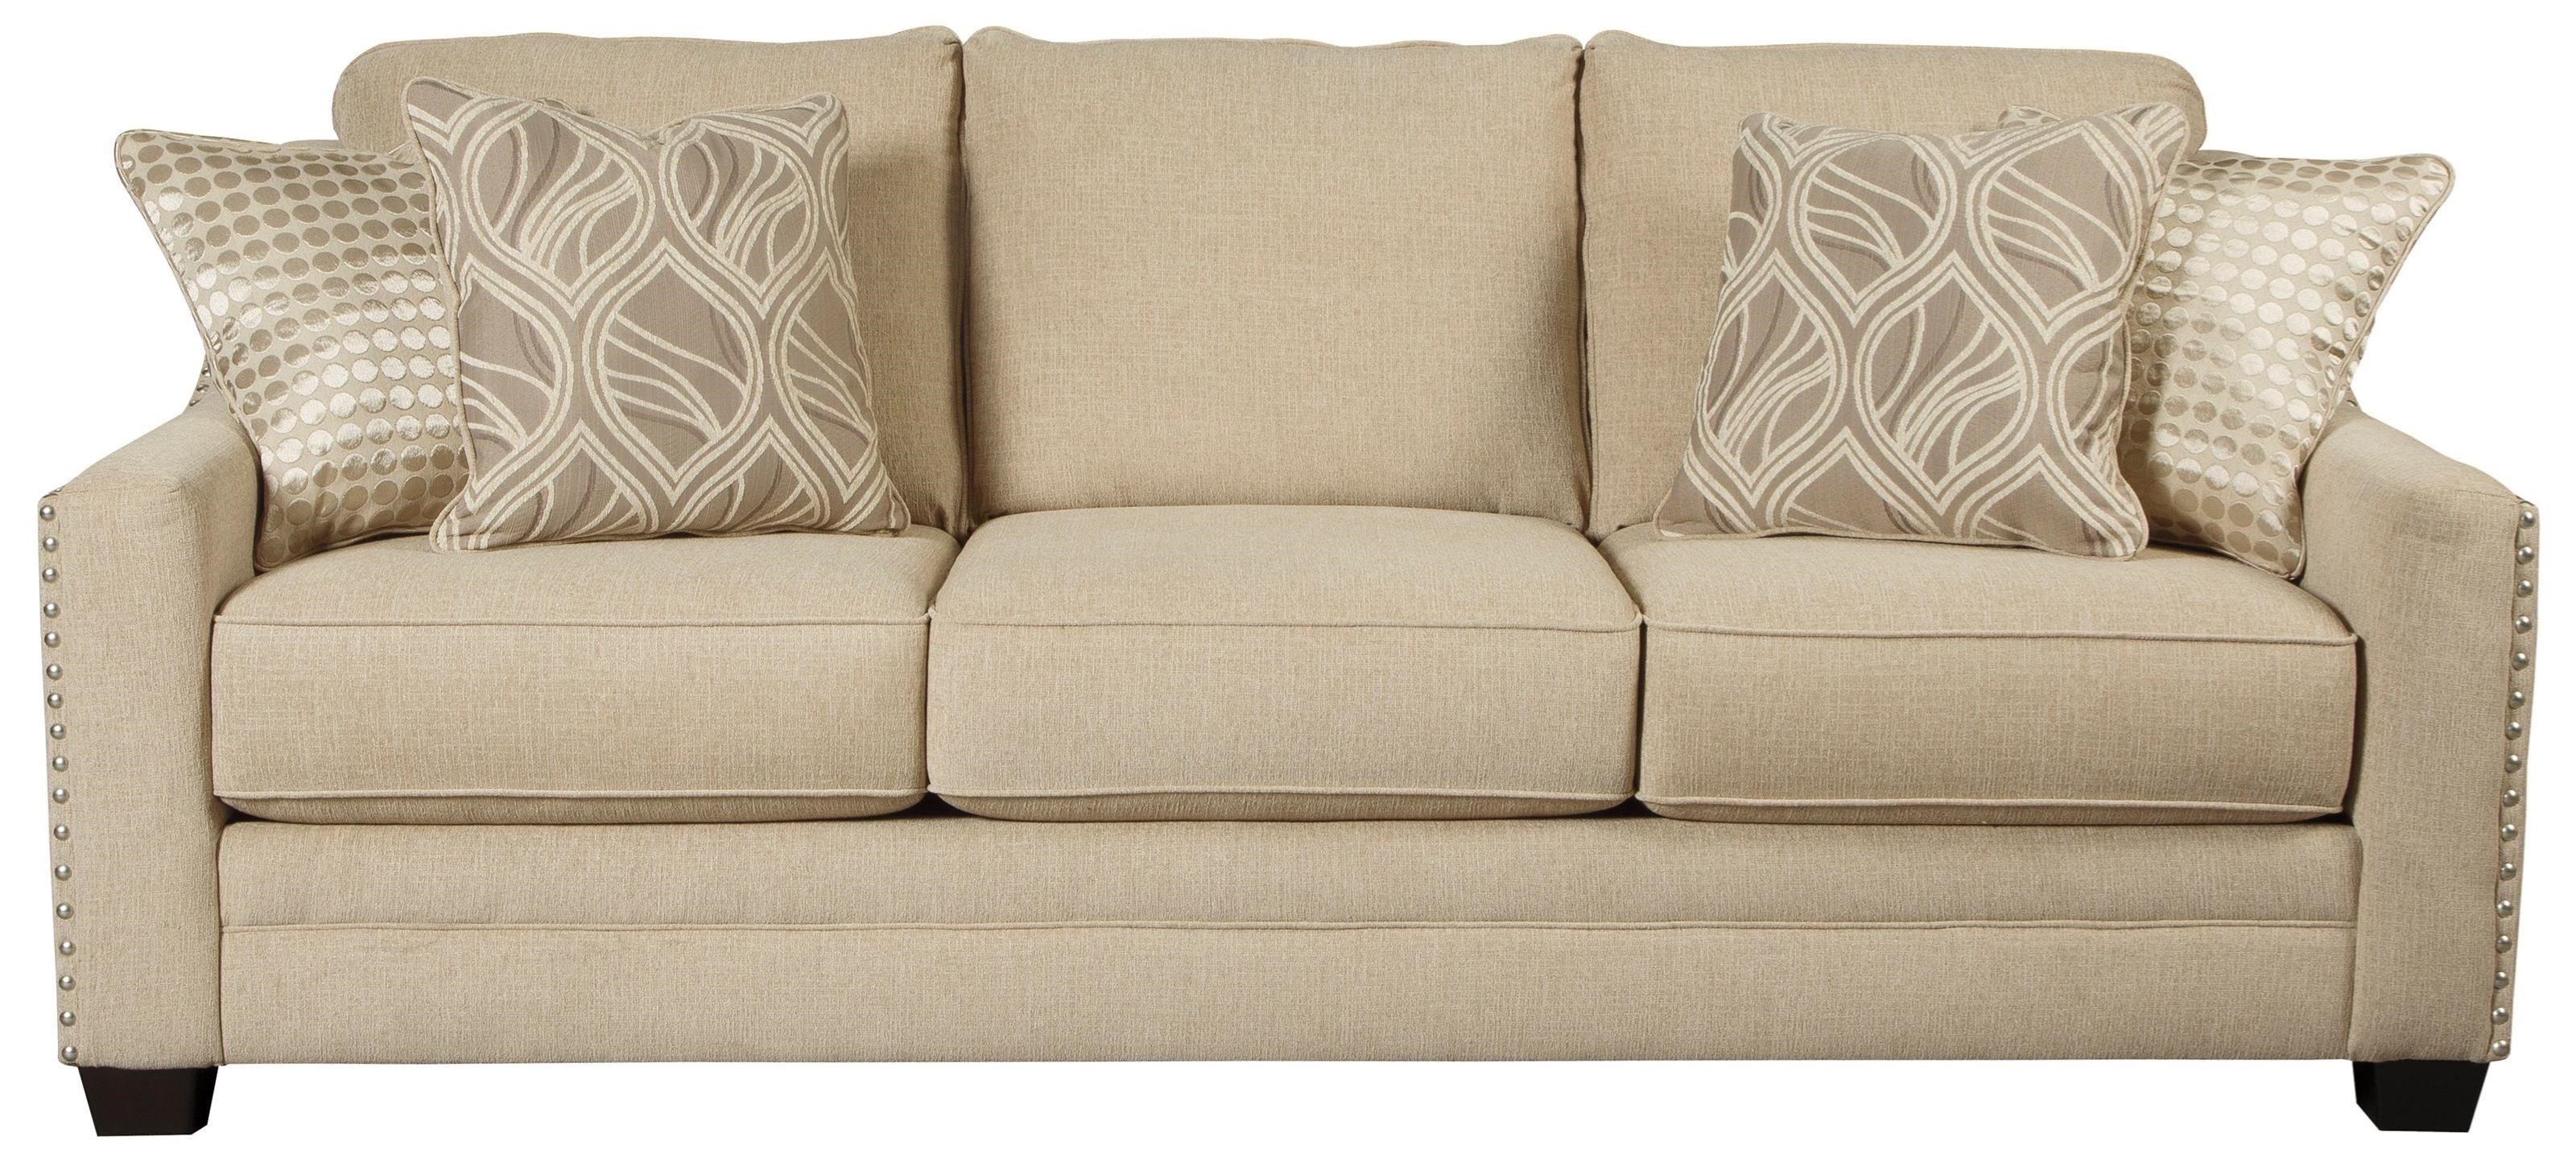 Benchcraft Mauricio Queen Sofa Sleeper - Item Number: 8160139